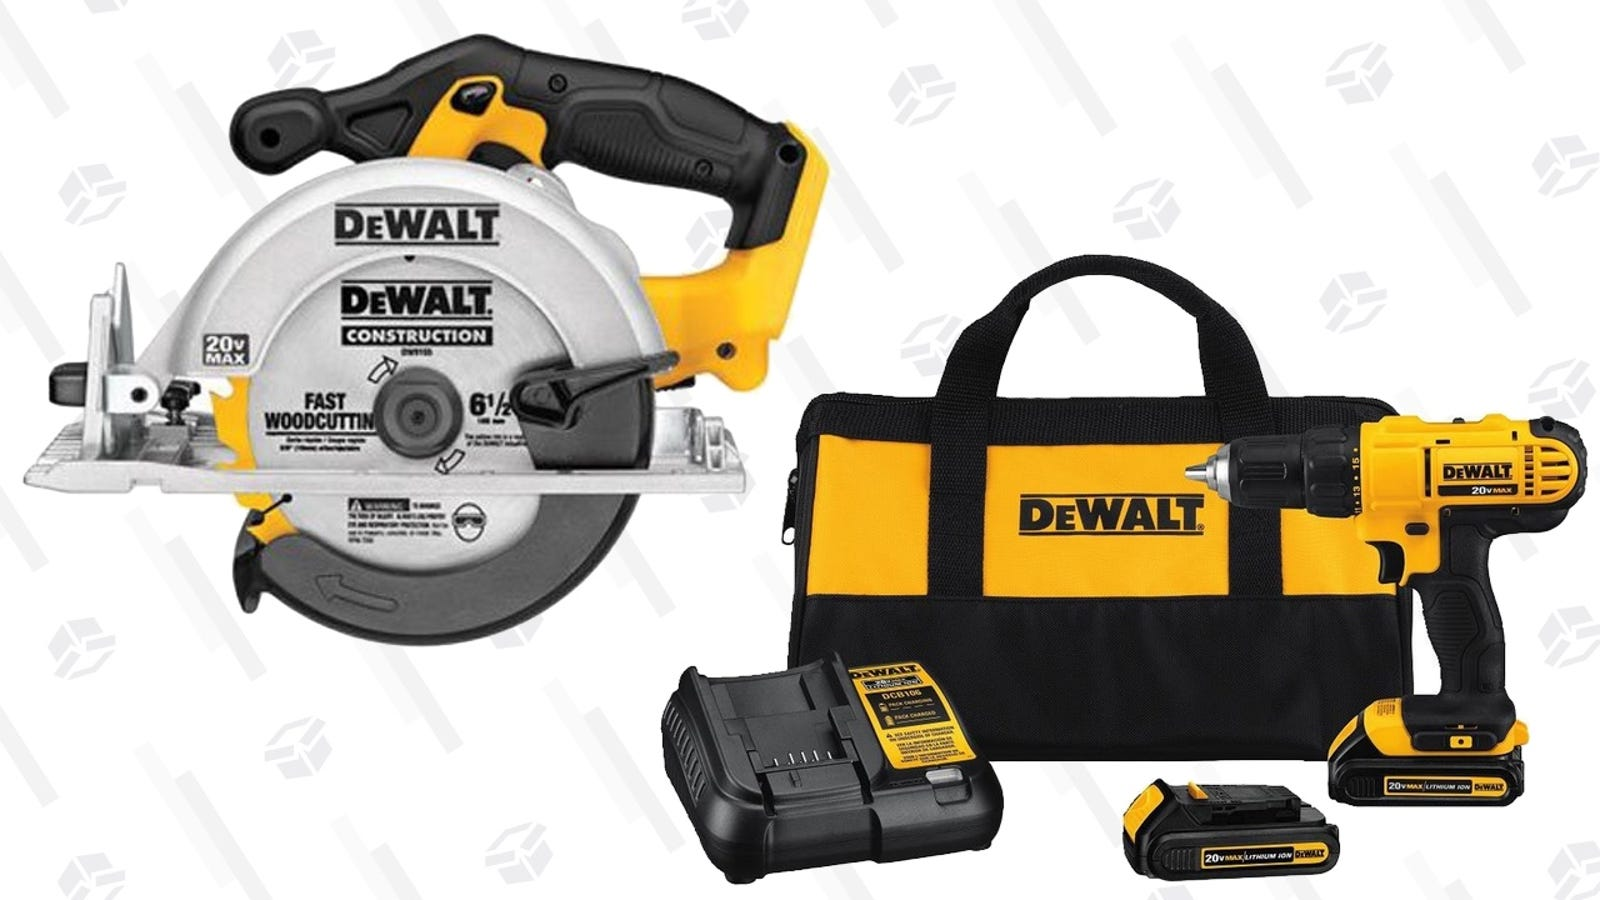 Buy a Circular Saw, Get a Drill Driver For Just $19 Extra, Today Only